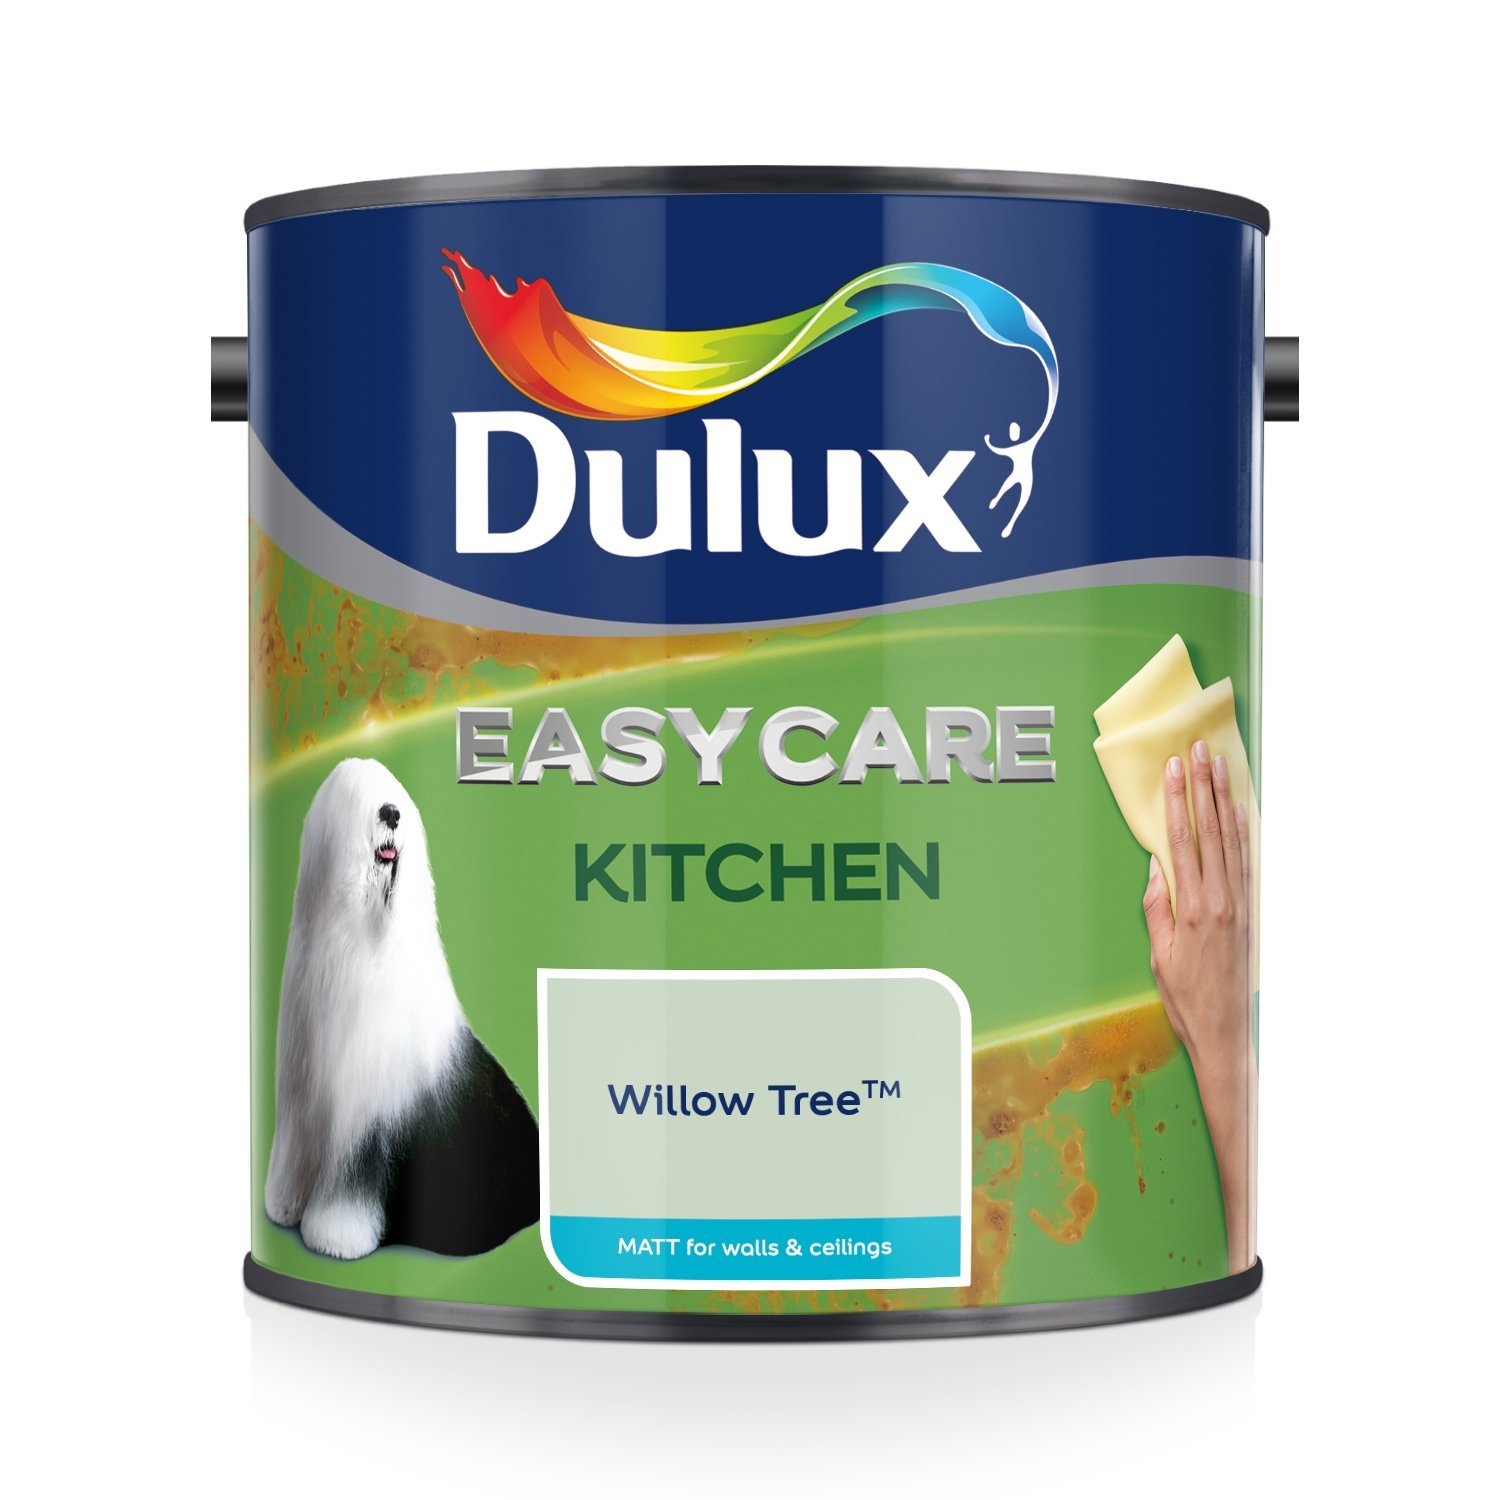 Dulux Easycare Kitchen Matt Paint, Pepper Red, 2.5 Litre AkzoNobel 500000